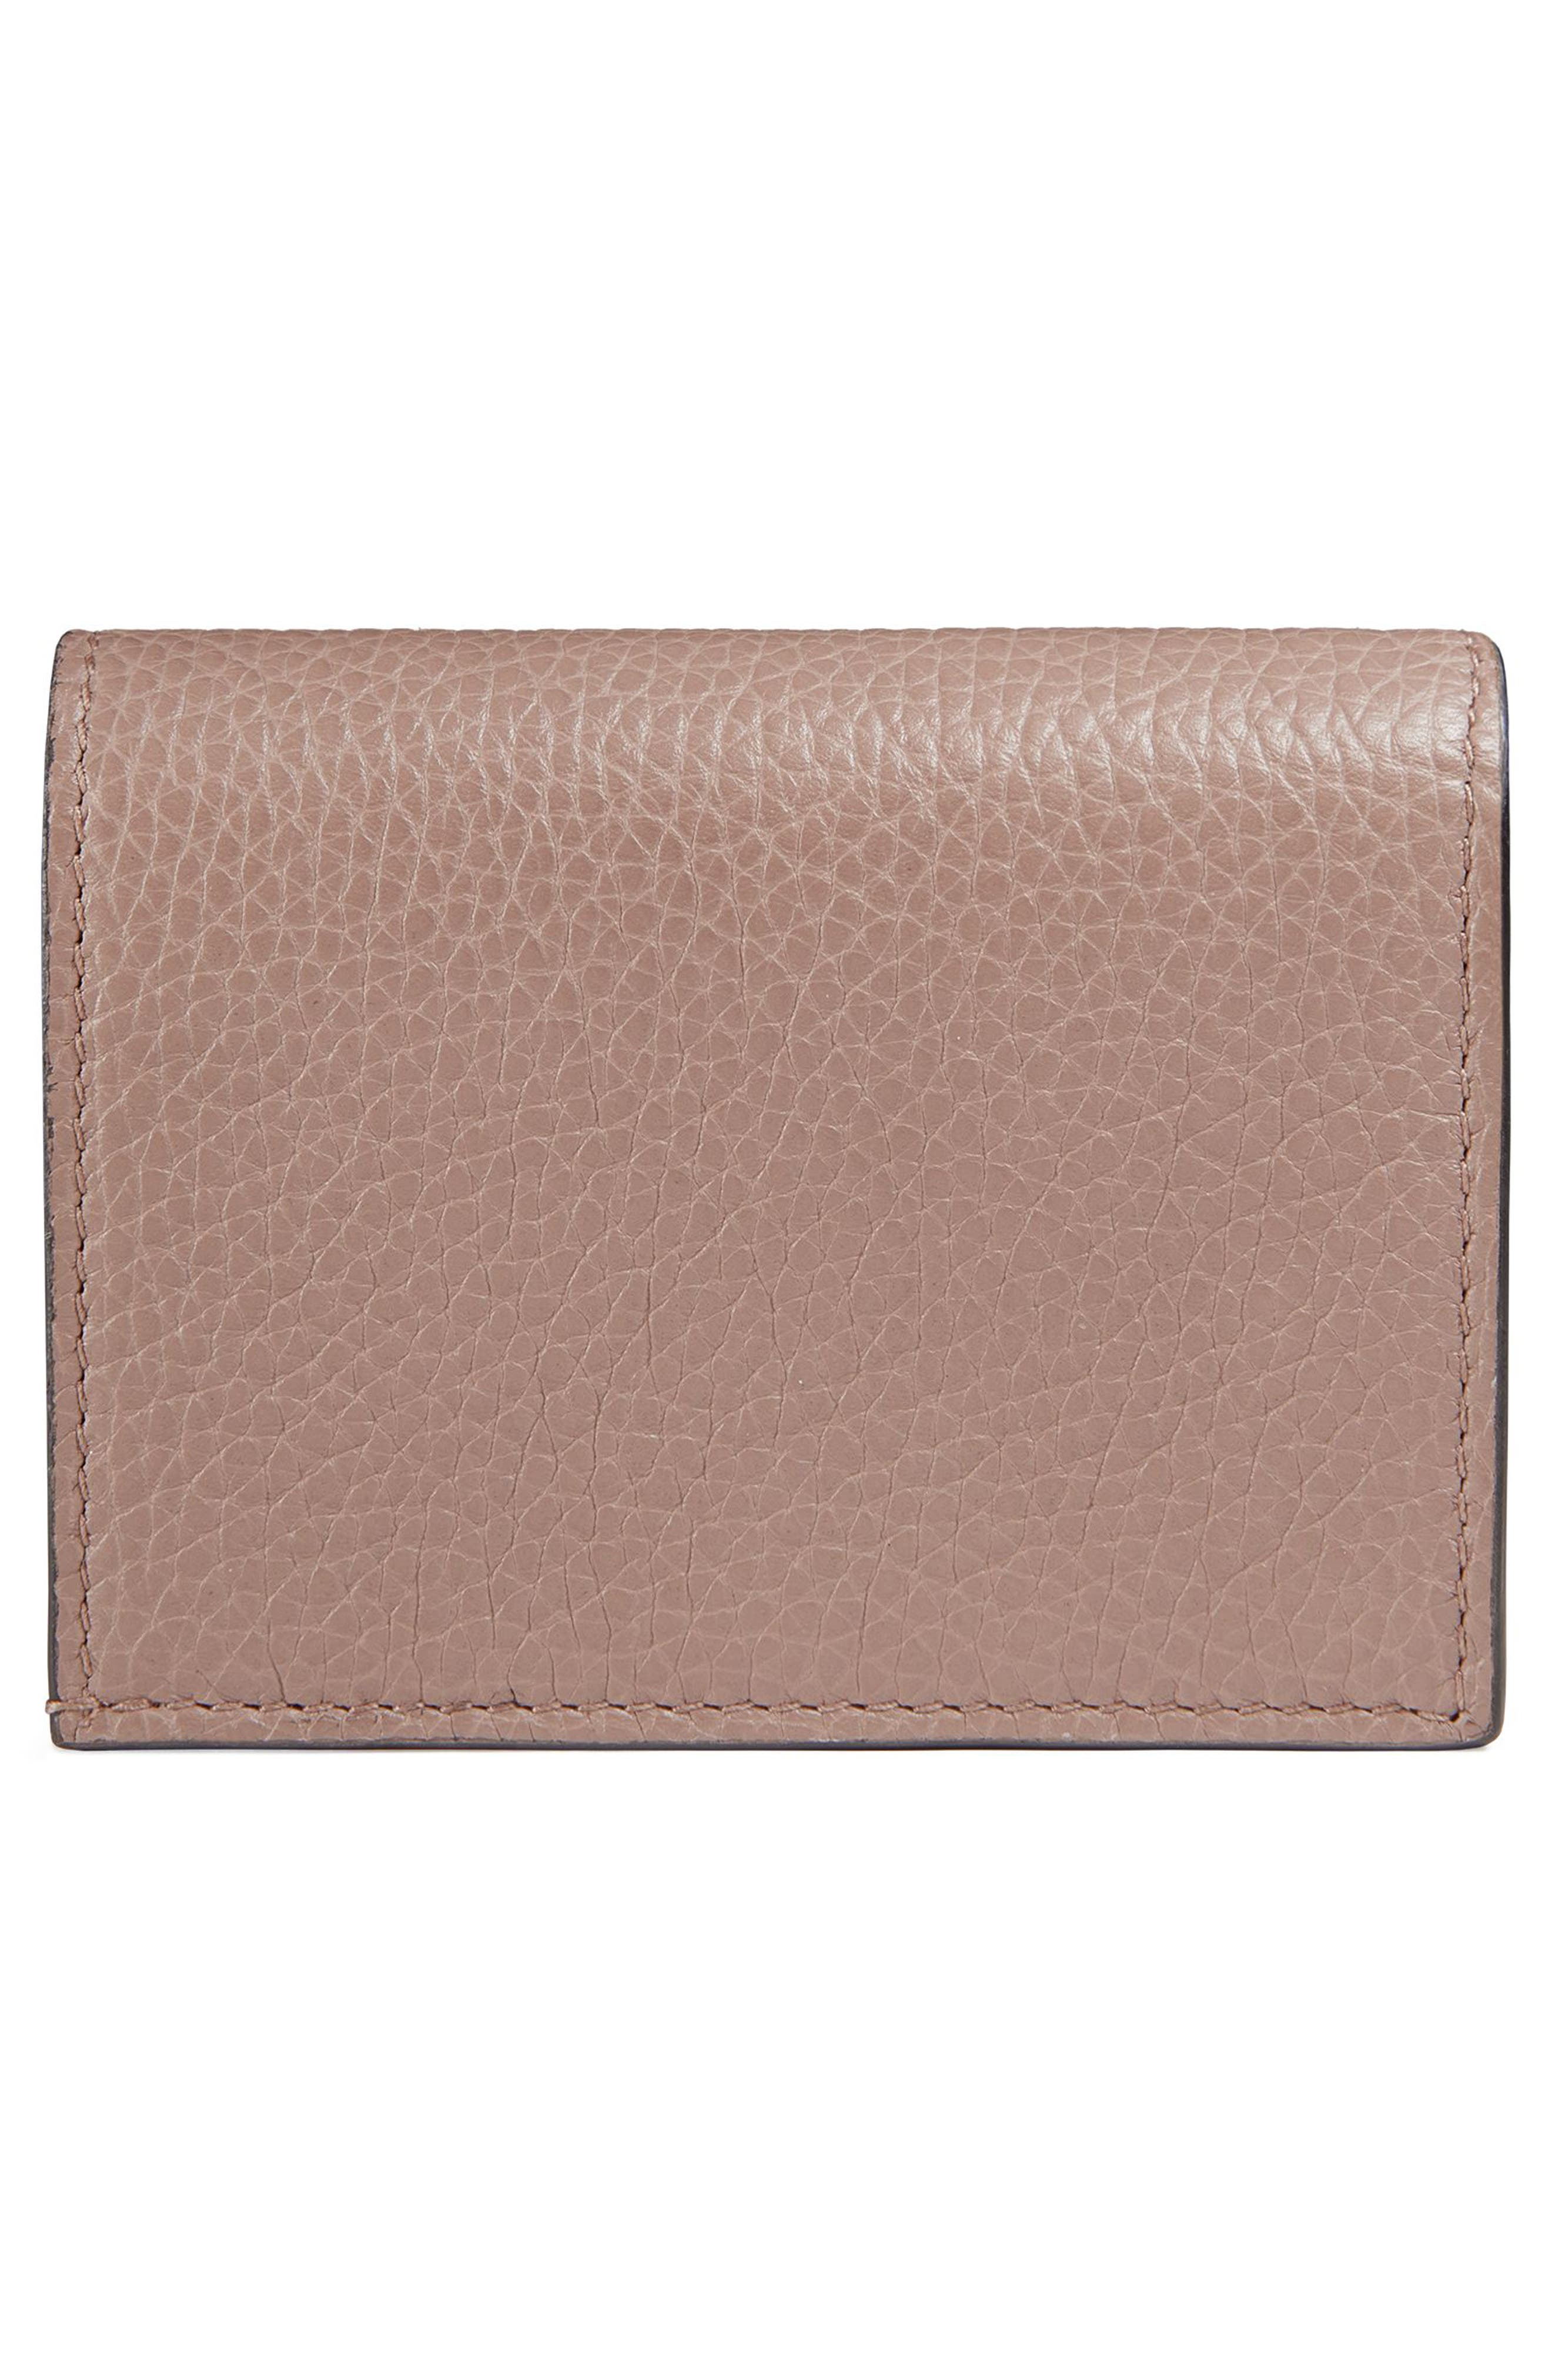 Animalier Bee Leather Card Case,                             Alternate thumbnail 3, color,                             PORCELAIN ROSE